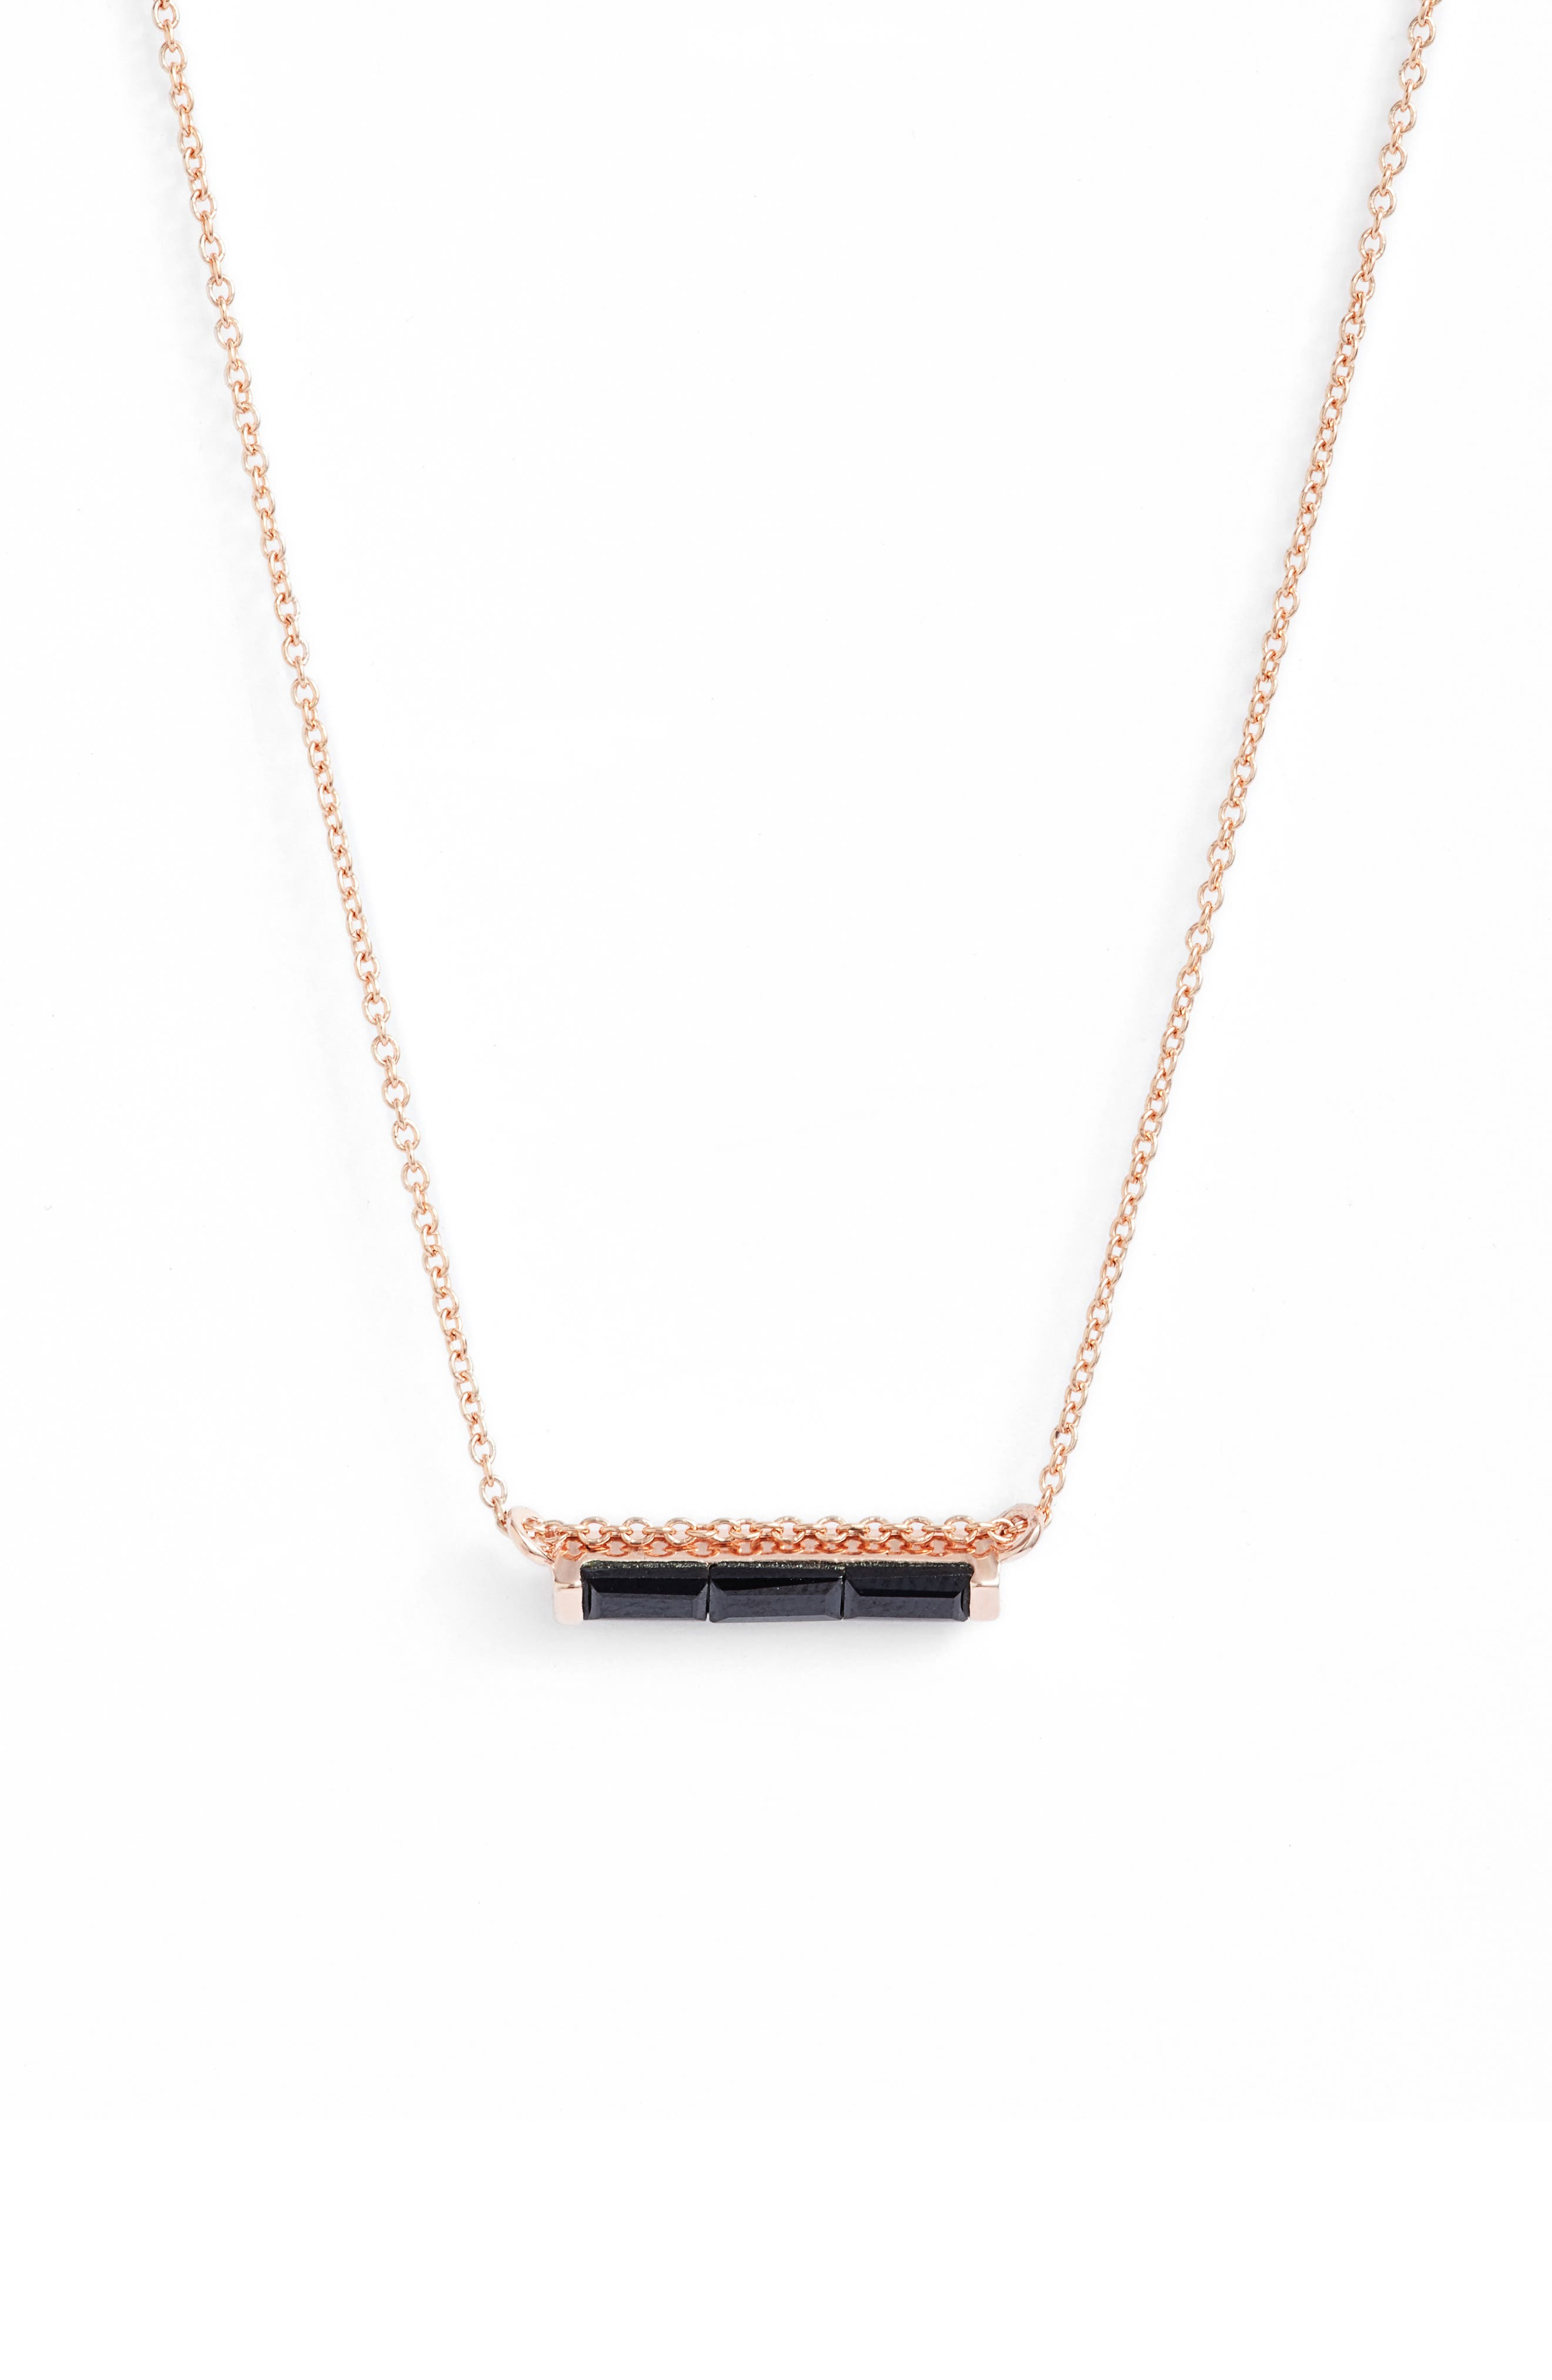 Leah Alexandra Channel Set Semiprecious Stone Necklace